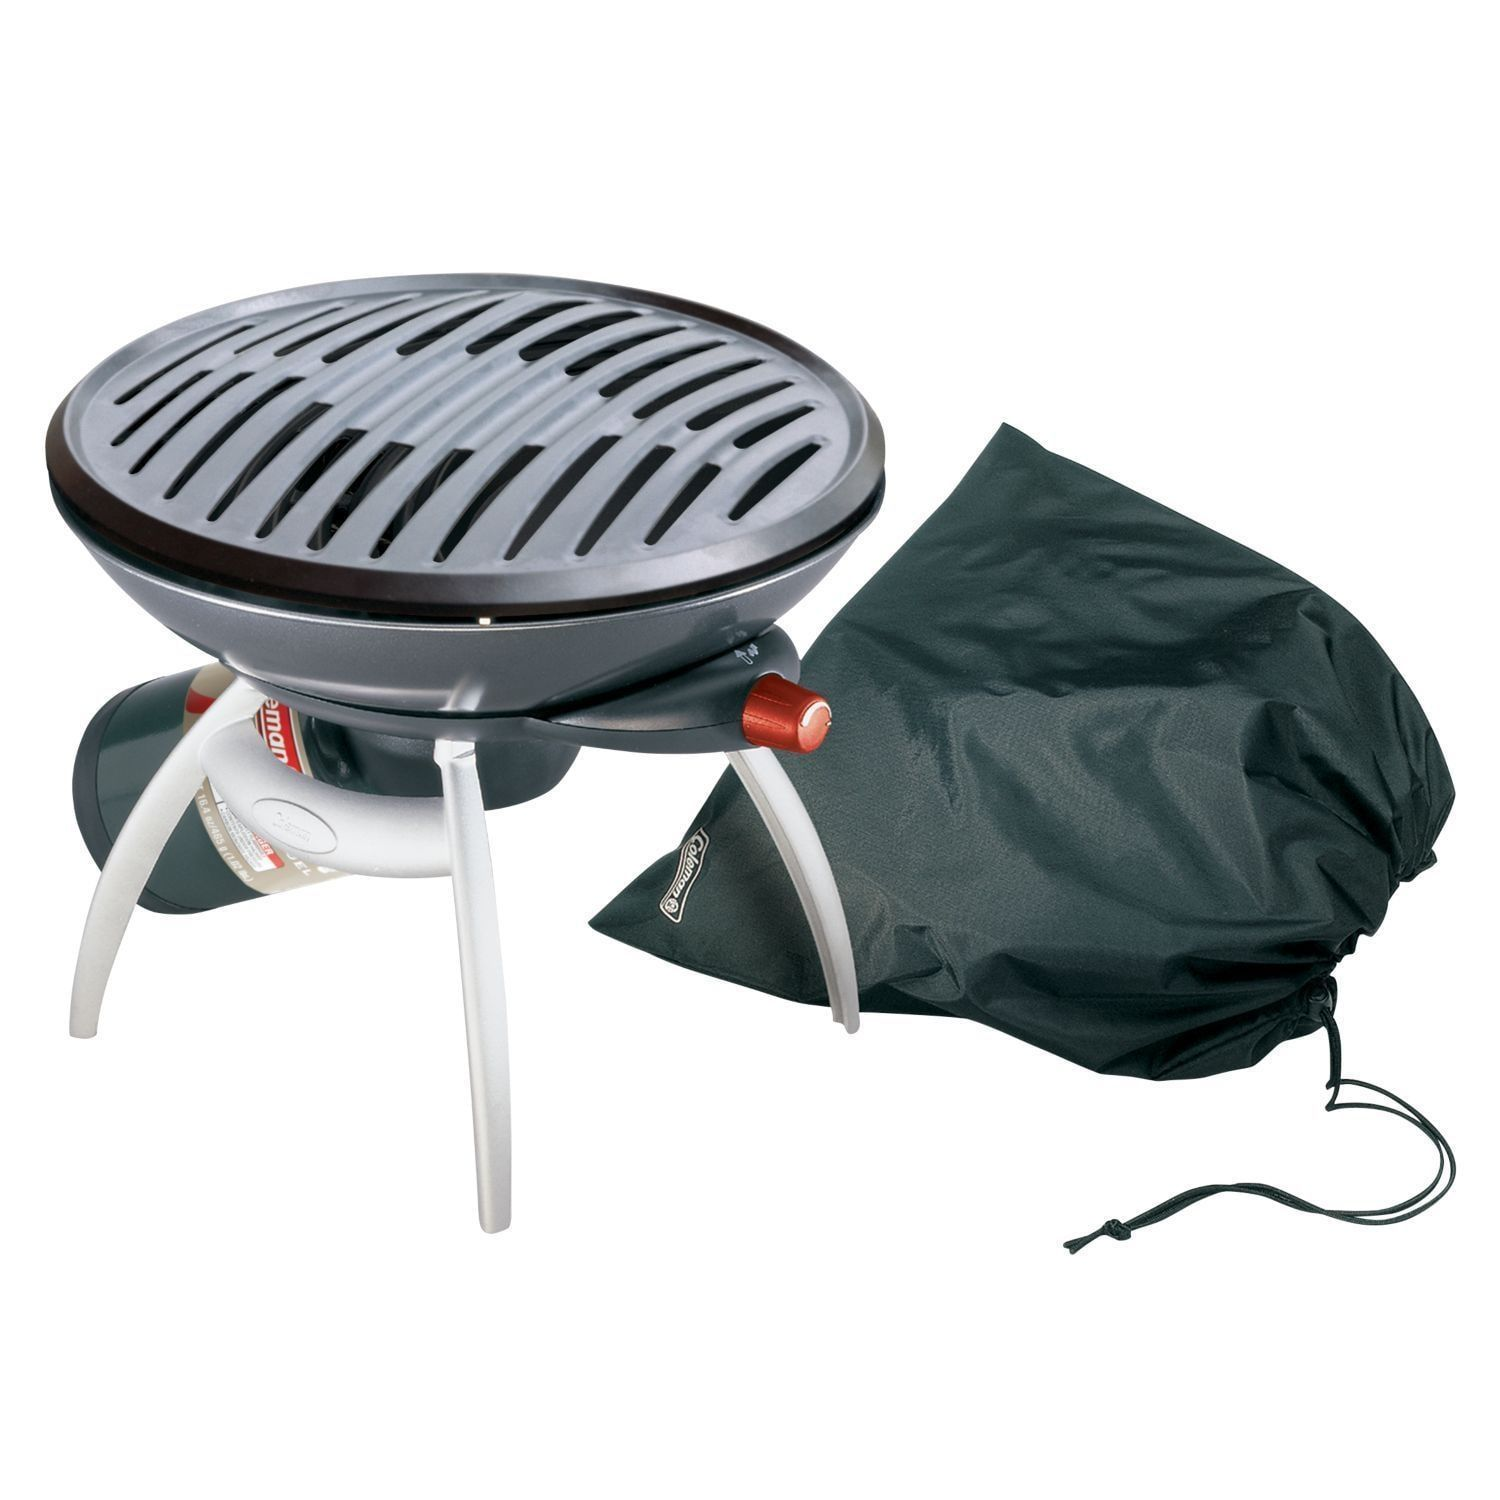 Grill Camping Coleman Propane Party Grill Gray Products Grilling Portable